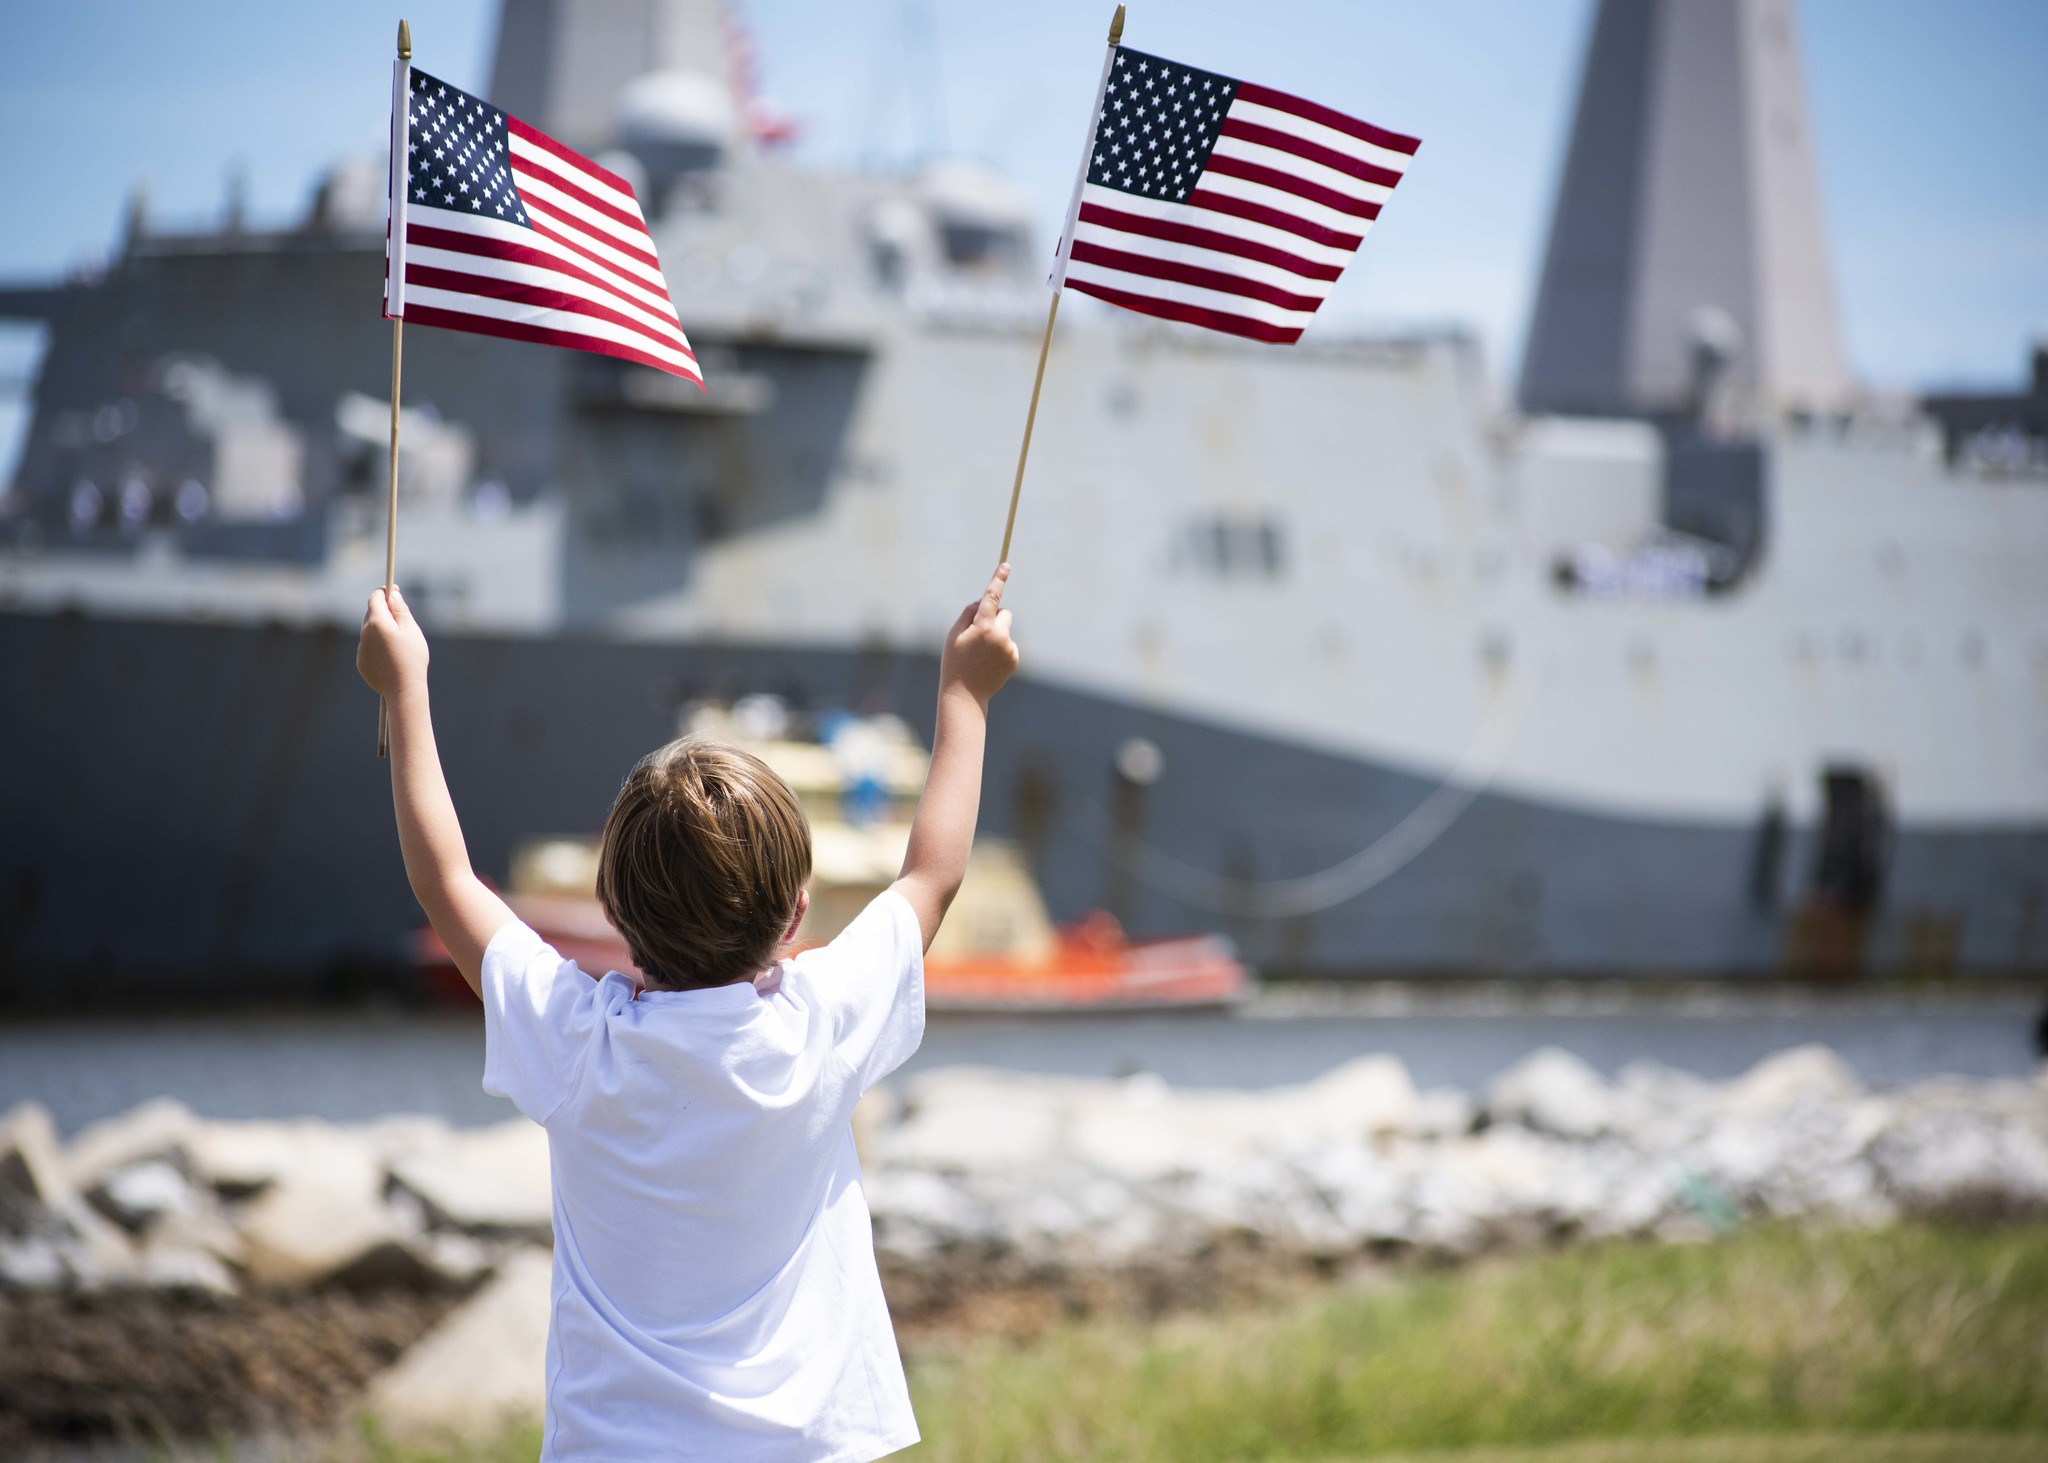 A family member waives American flags as the San Antonio-class amphibious transport dock ship USS New York (LPD 21) arrives at Naval Station Mayport in Florida on July 28, 2020. (MC1 Brian G. Reynolds/Navy)